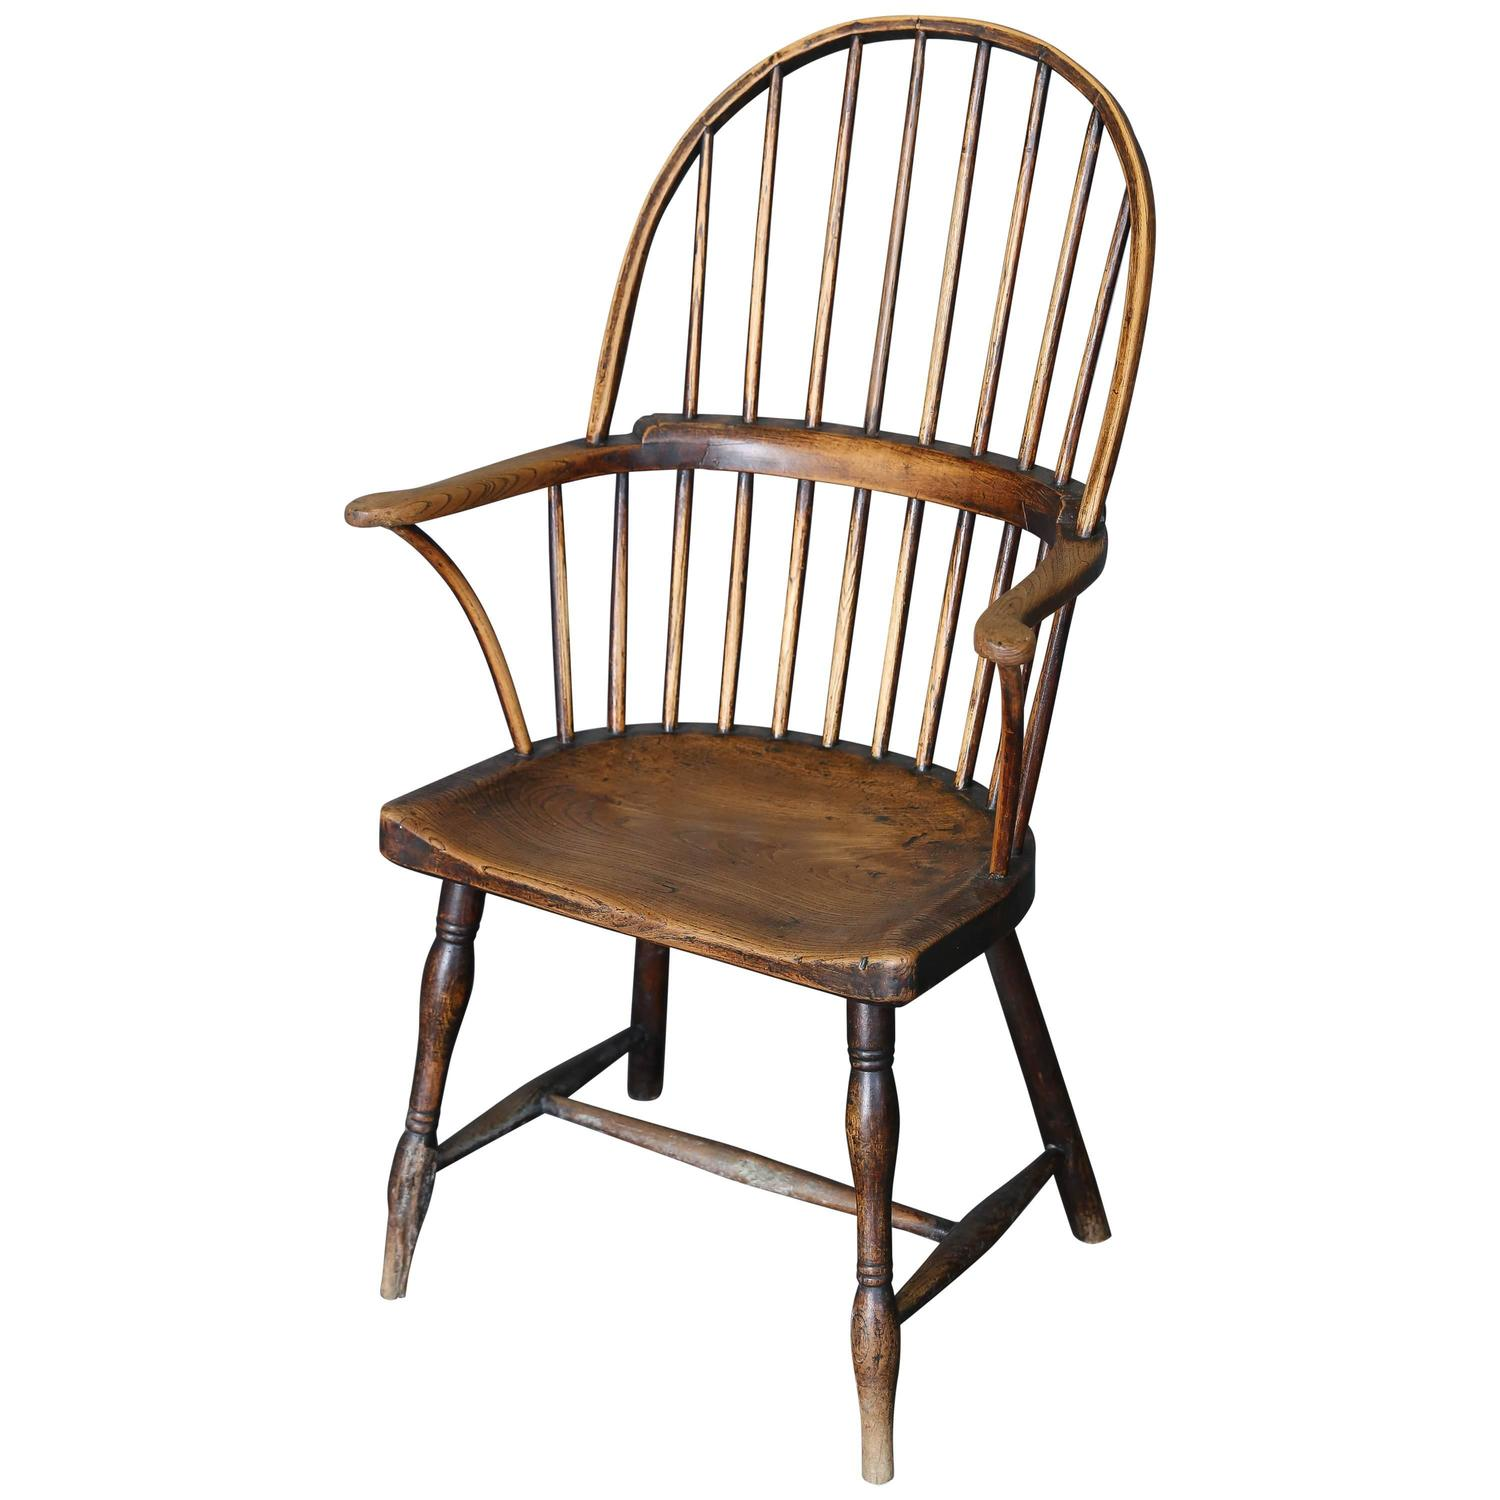 - Antique 18th Century Ash And Elm Windsor Chair For Sale At 1stdibs